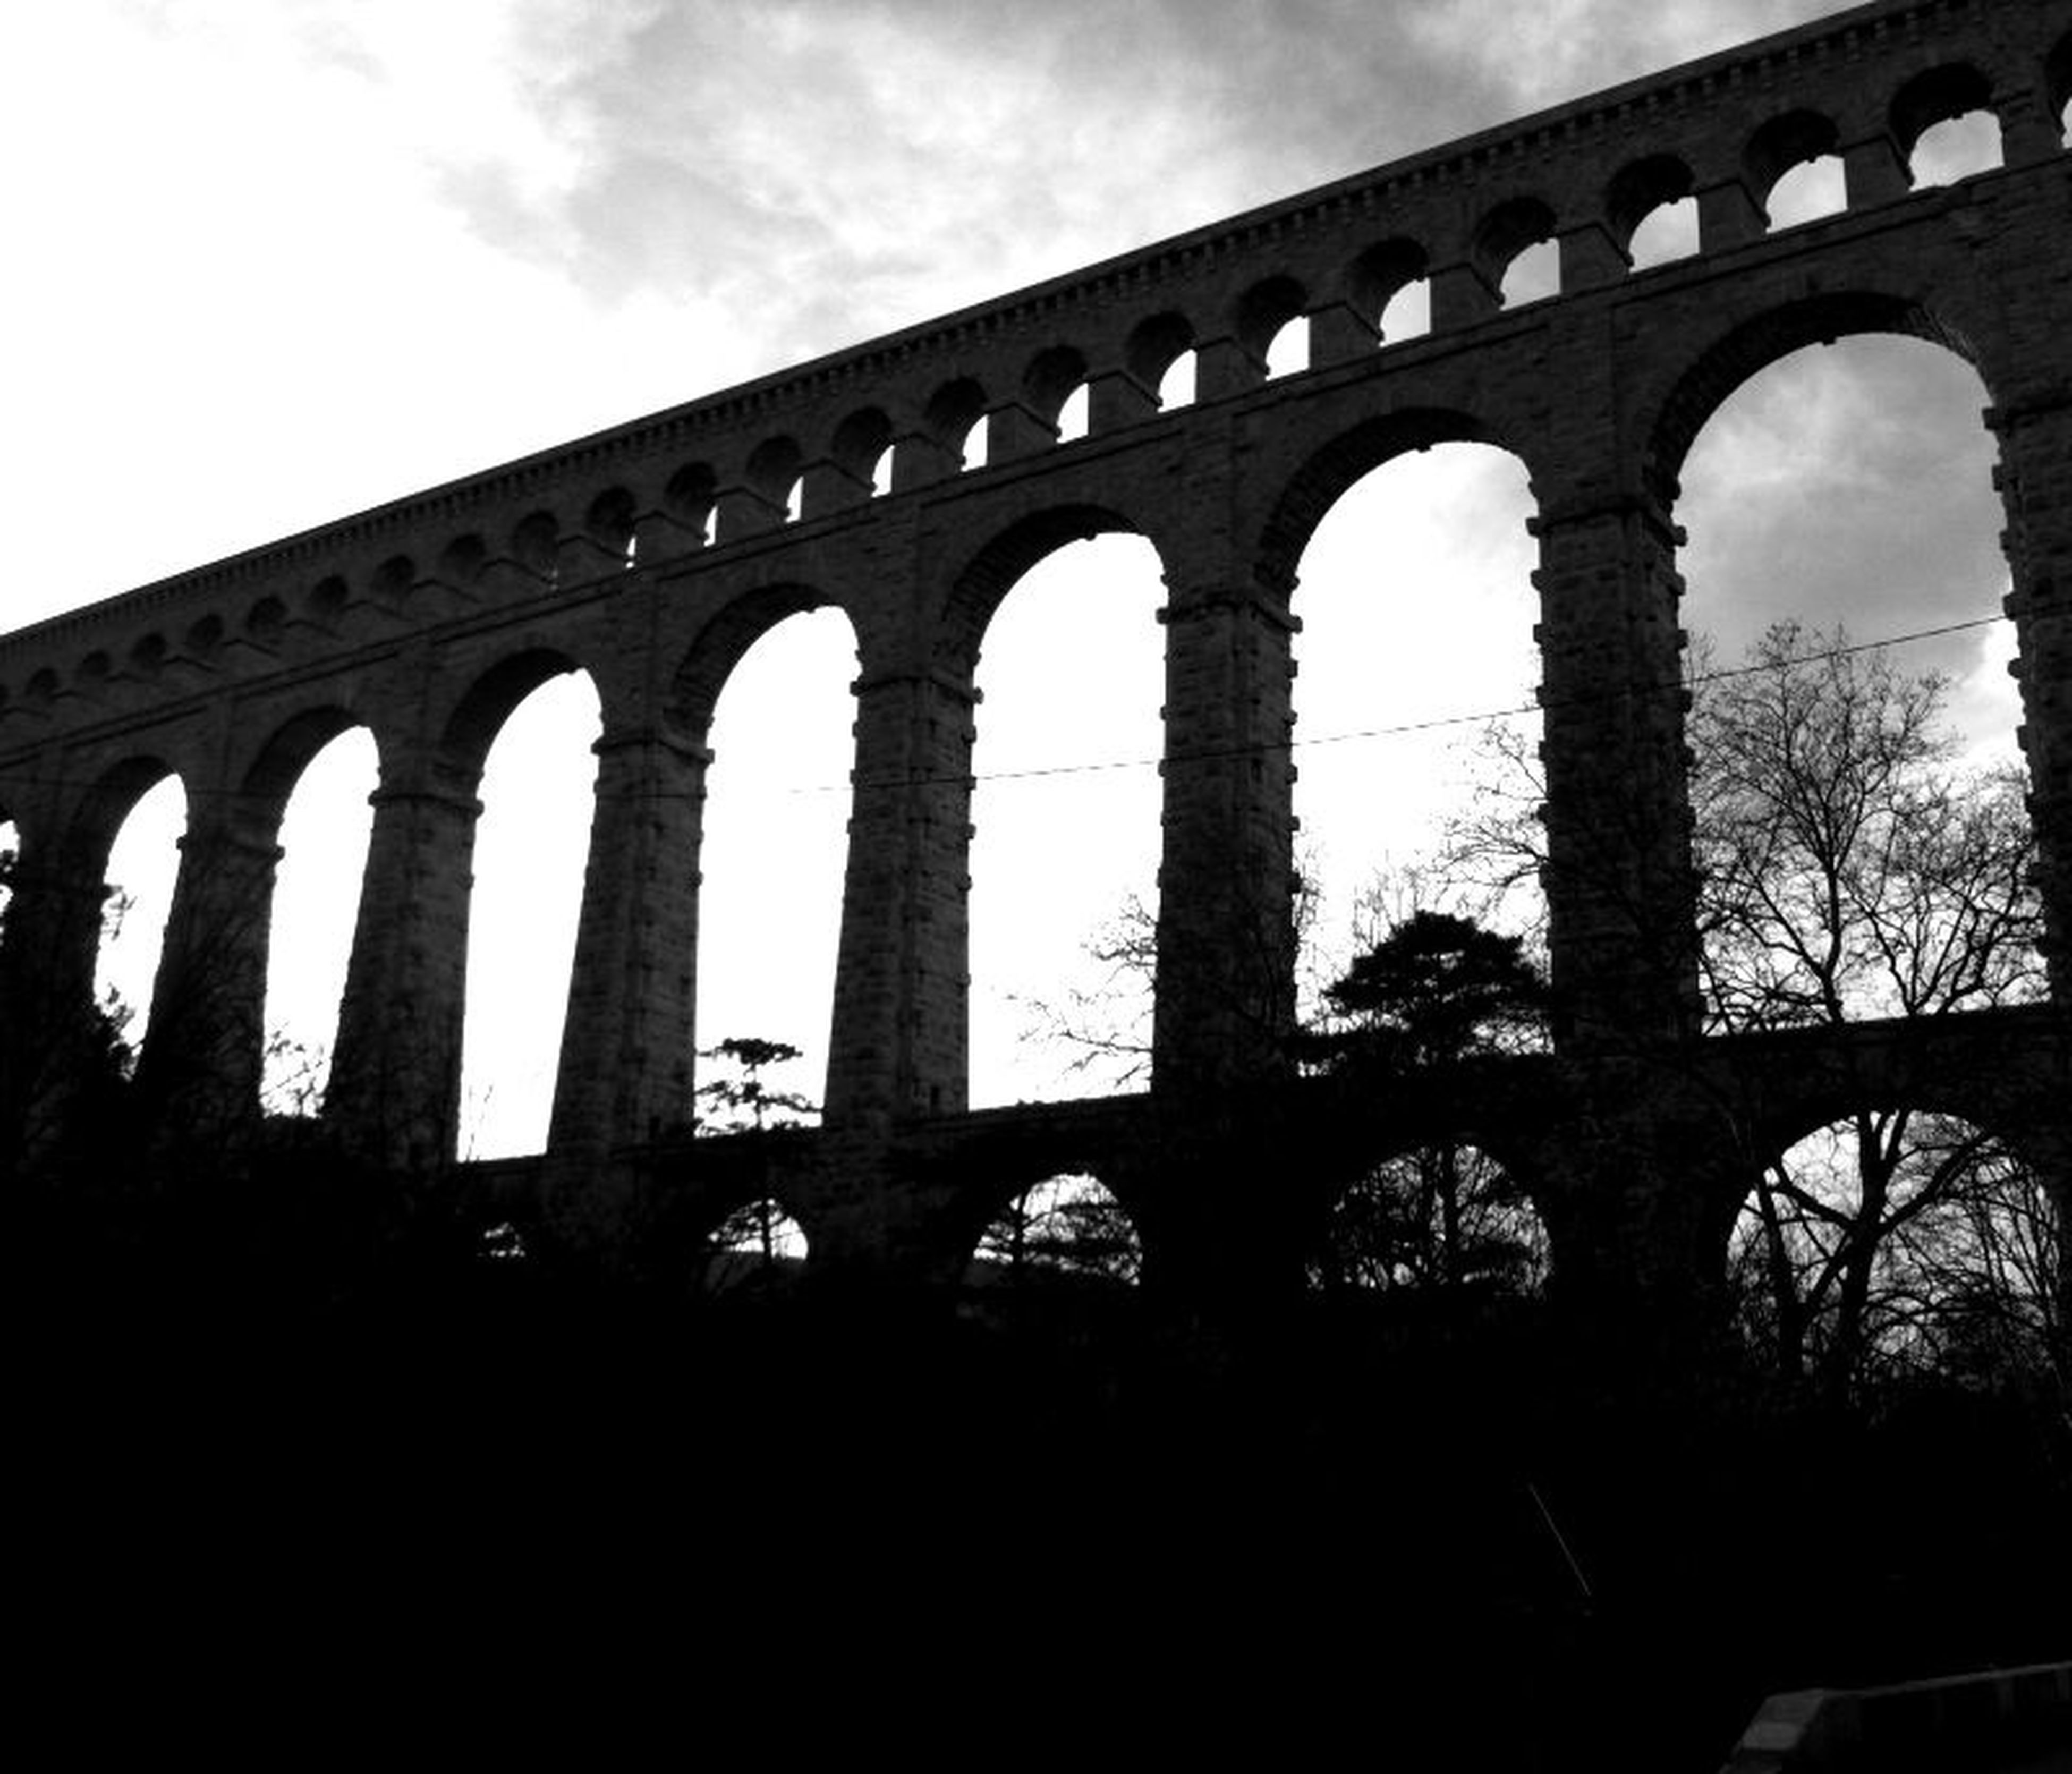 architecture, built structure, arch, low angle view, sky, history, building exterior, silhouette, arch bridge, arched, bridge - man made structure, architectural column, travel destinations, famous place, the past, connection, outdoors, no people, day, old